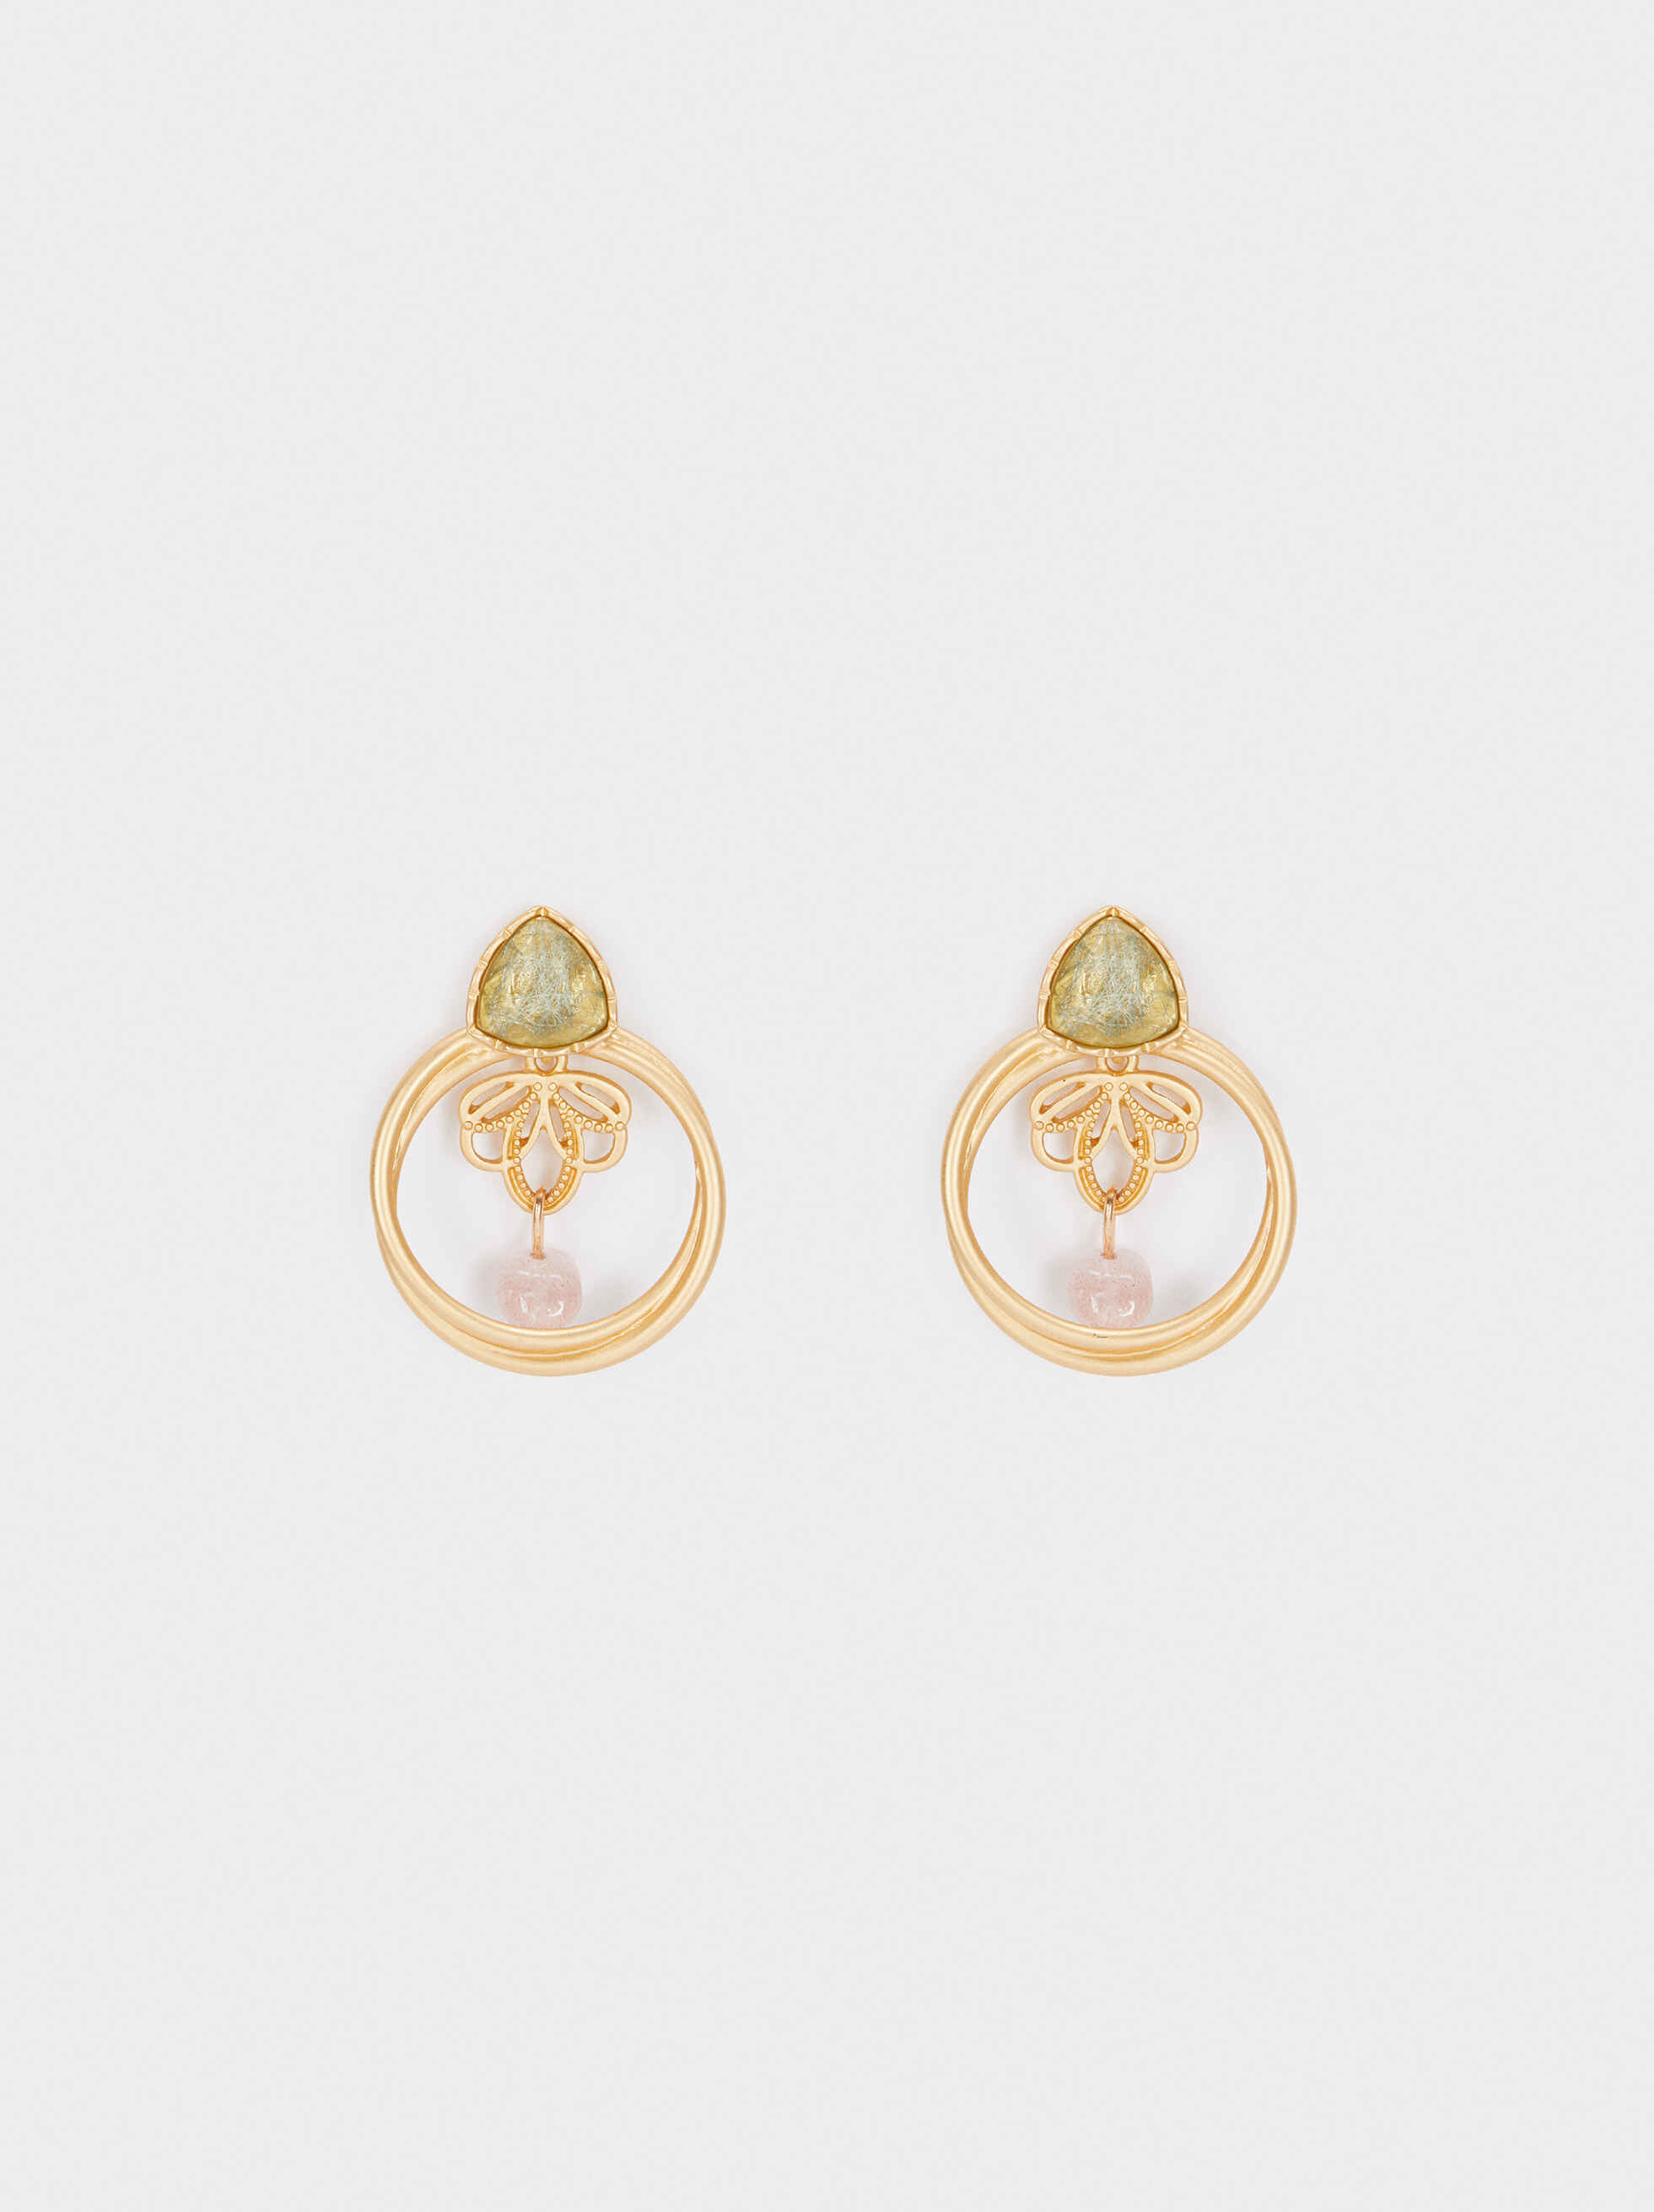 Medium Gold Earrings With Stone, Multicolor, hi-res